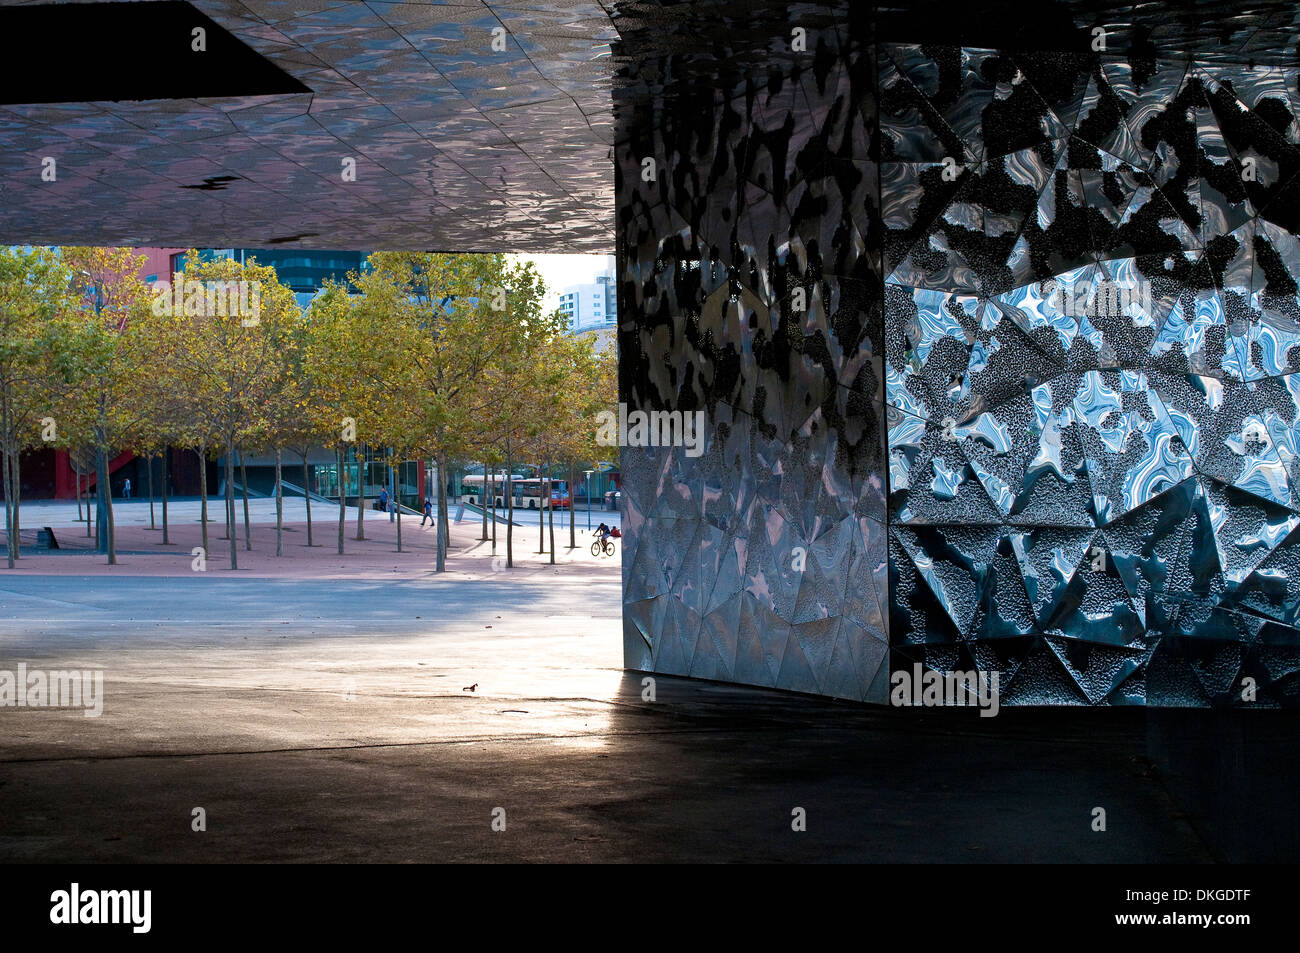 Architectural detail, Museu Blau - Blue Museum, Natural History and Science Museum, Barcelona, Catalonia, Spain - Stock Image